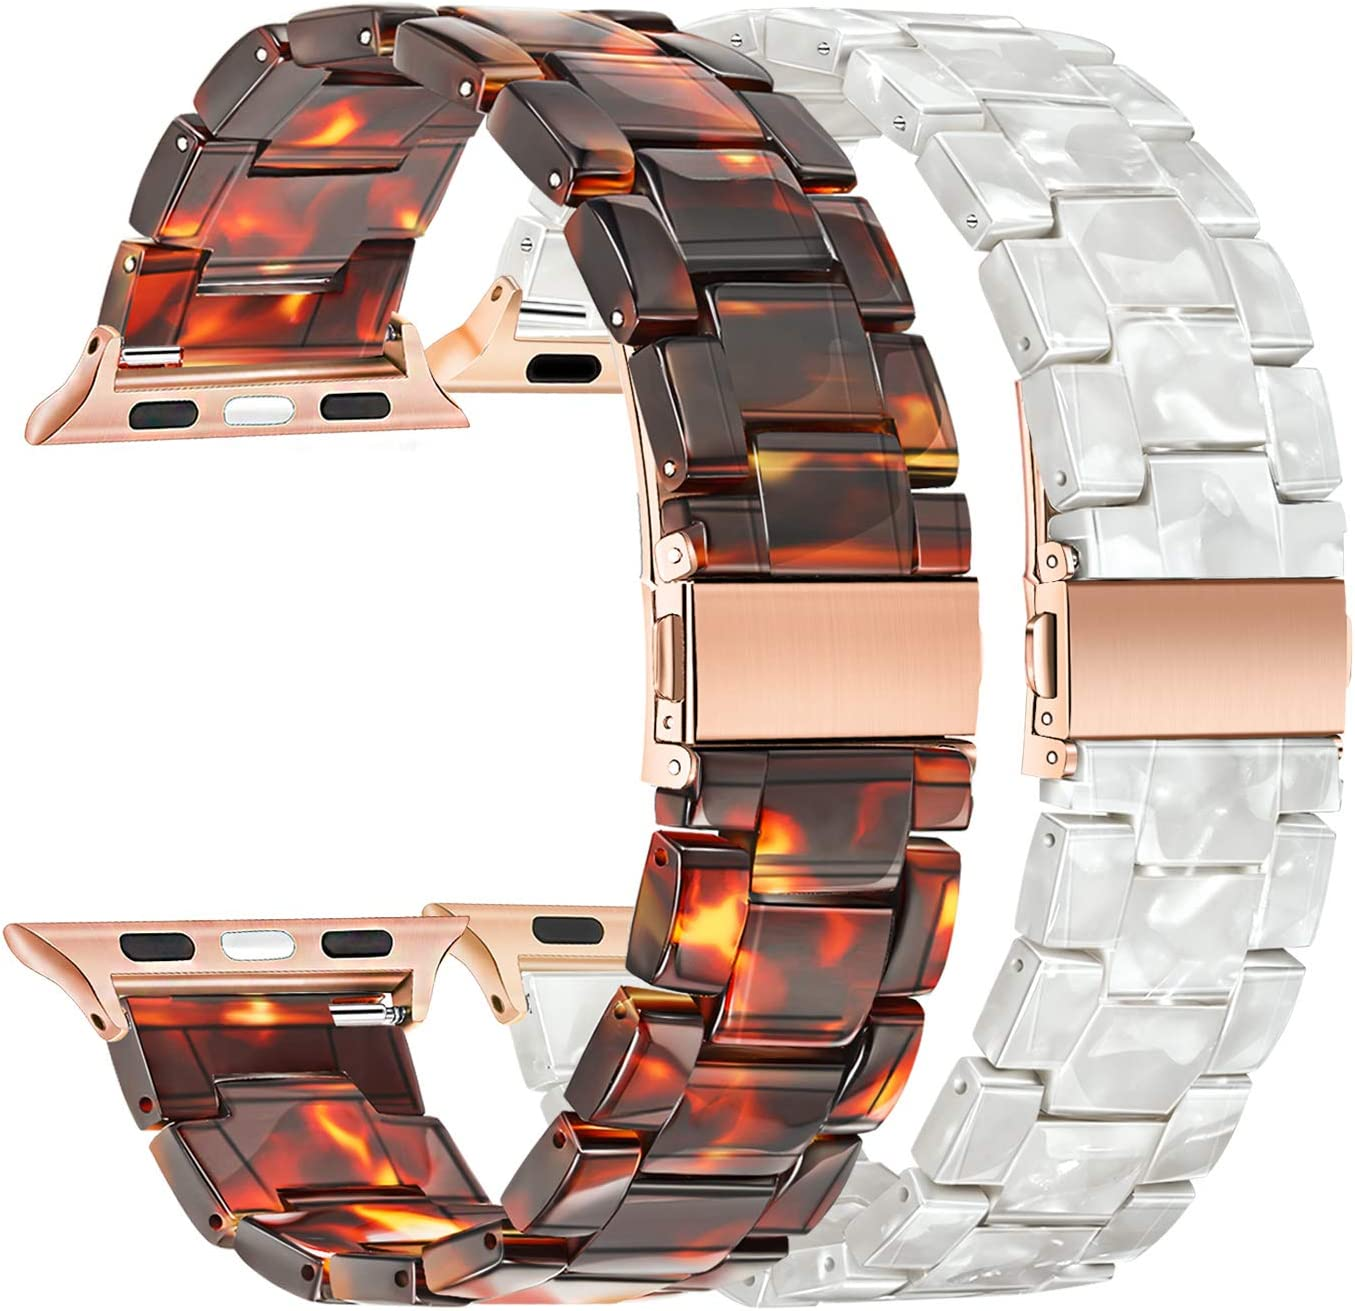 TRUMiRR Compatible with Apple Watch Band 38mm 40mm Women, 2 Pack Fashion Resin Watchband Rose Gold Stainless Steel Buckle Strap Bracelet for iWatch SE Series 6 5 4 3 2 1 All Models